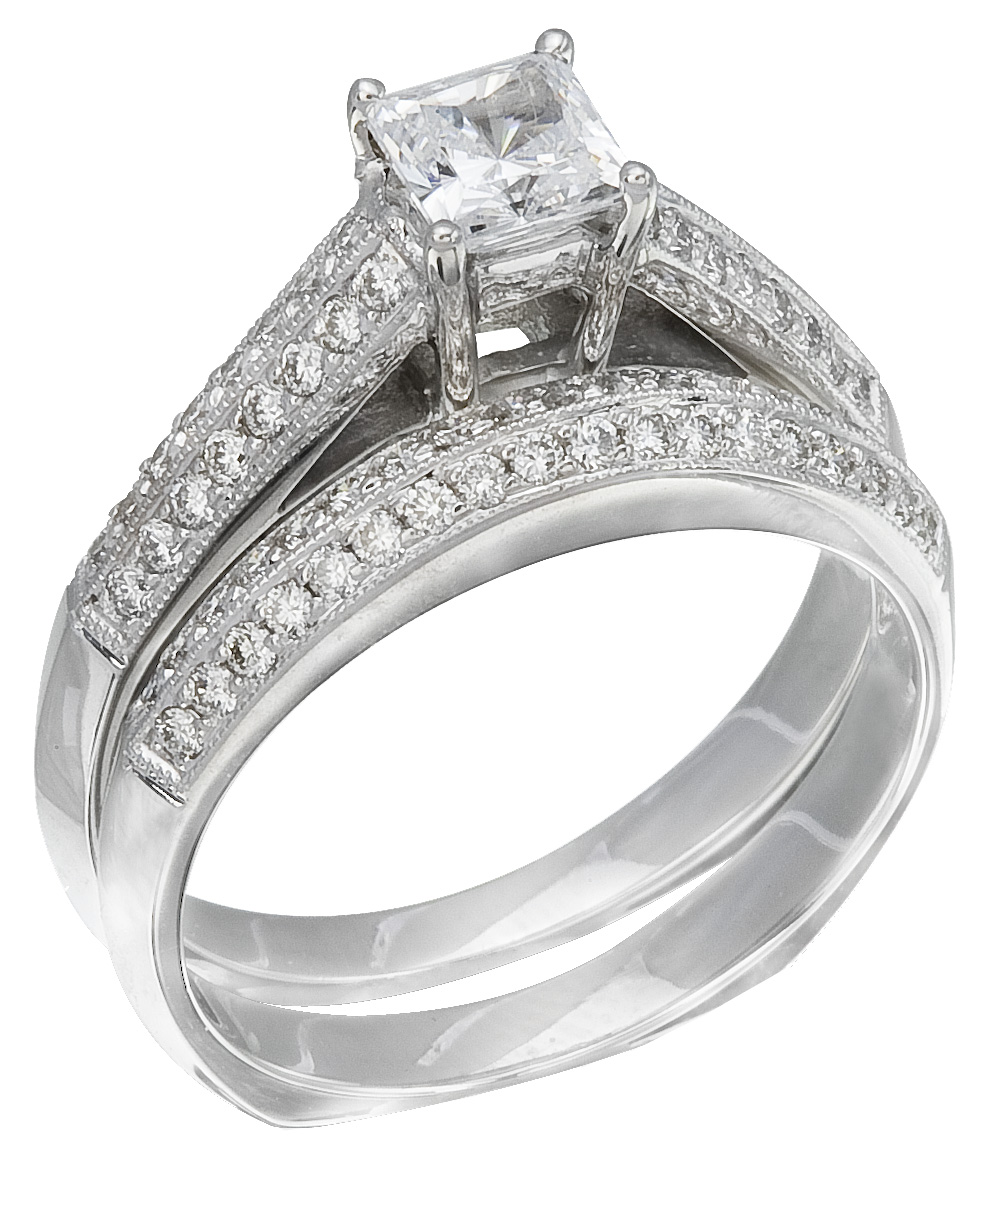 Diamond Wedding Ring Set, .46 Carat Diamonds On 14K White Gold   Image 0